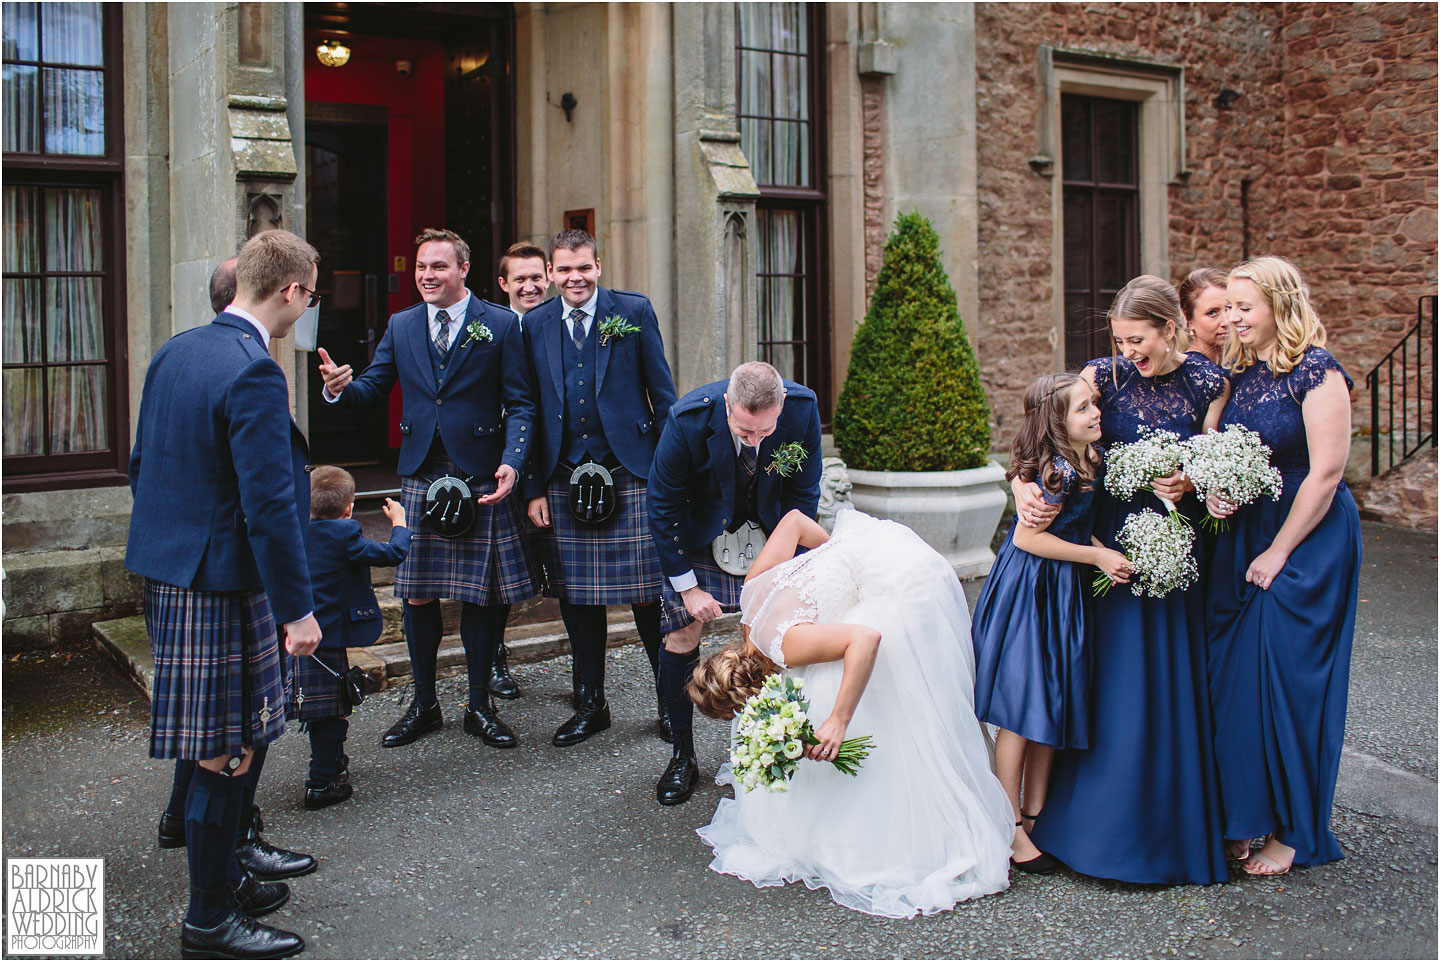 Fun kilt wedding photo, Rowton Castle, Shropshire Wedding Photographer, Shrewsbury wedding venue, Amazing UK Castle Wedding